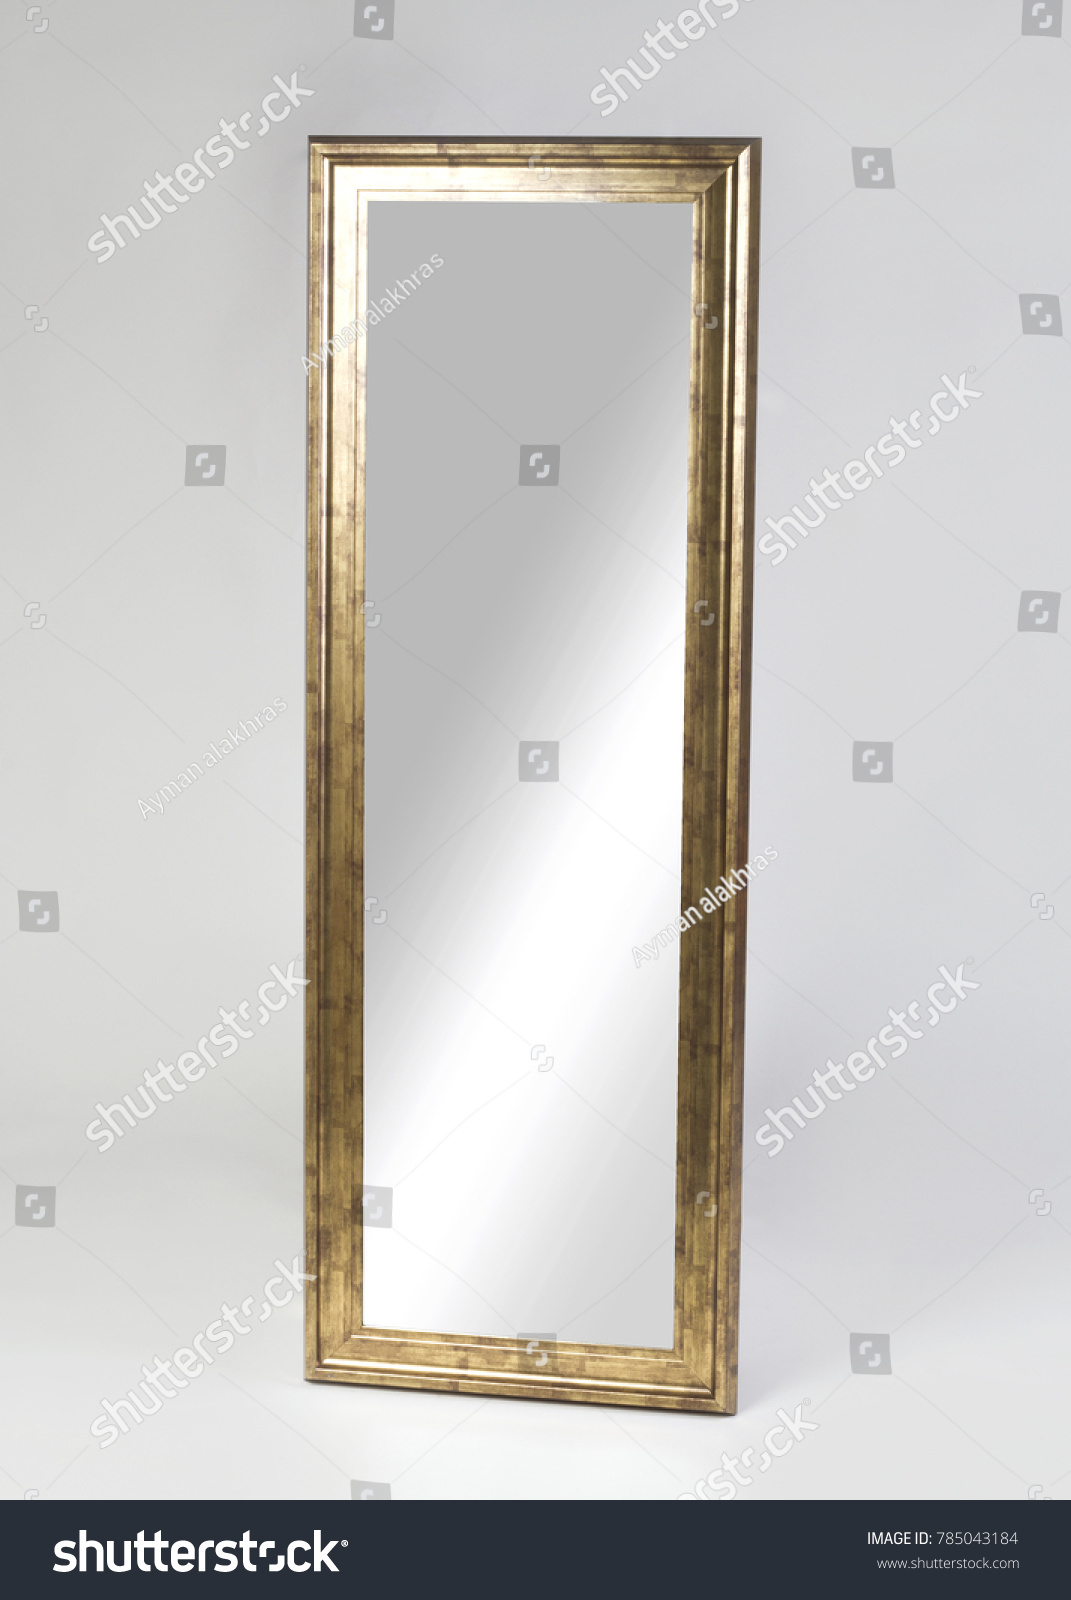 Large Golden Framed Mirror Isolated On Stock Photo (Edit Now ...